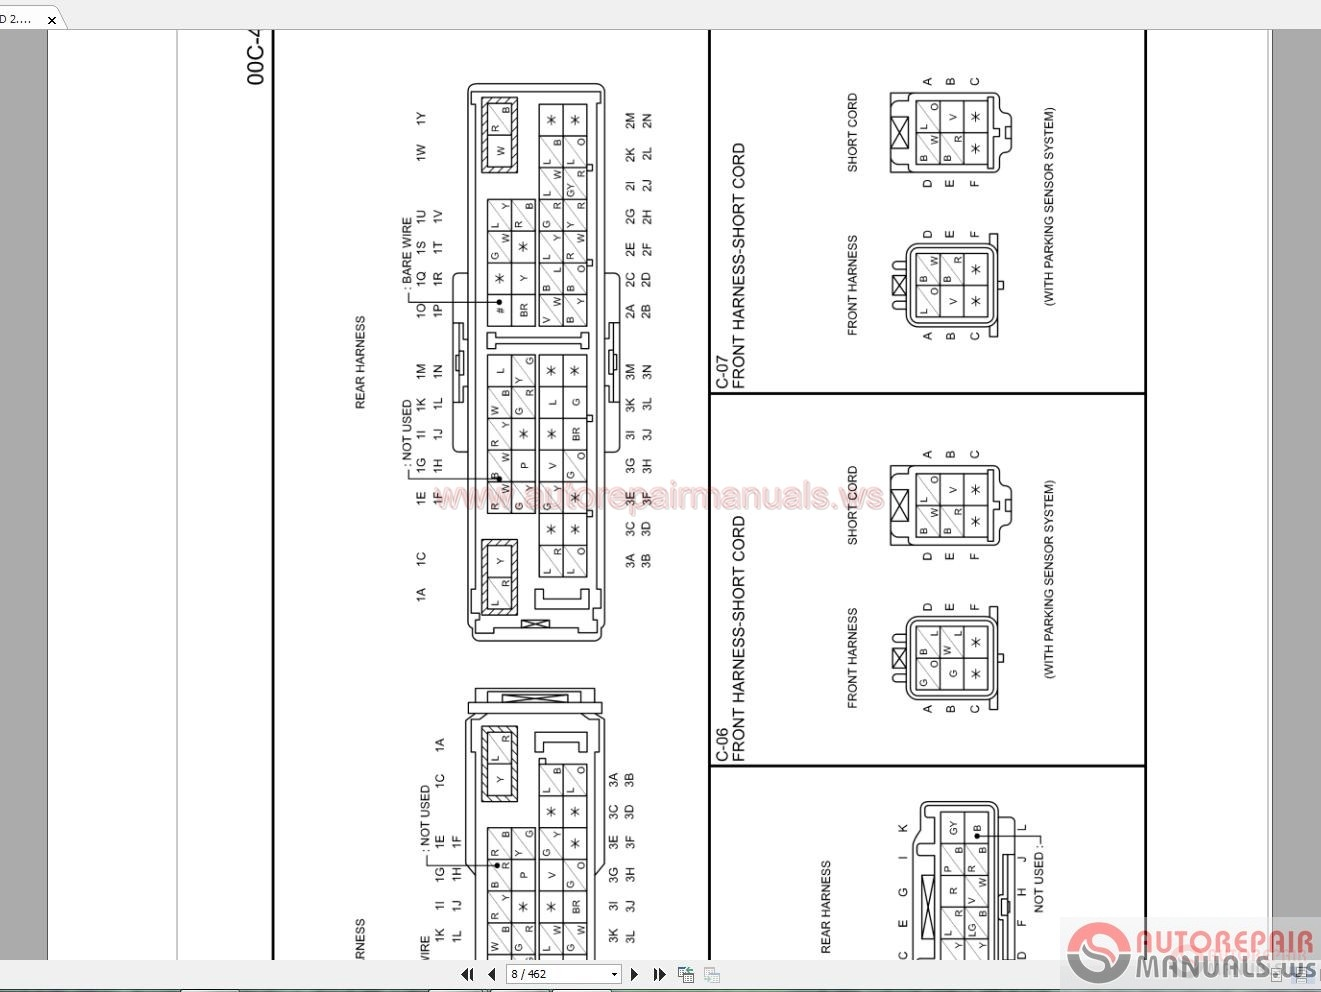 mazda engine schematics mazda wiring schematics mazda cx-5 2016 4wd 2.2 wiring diagram | auto repair ...